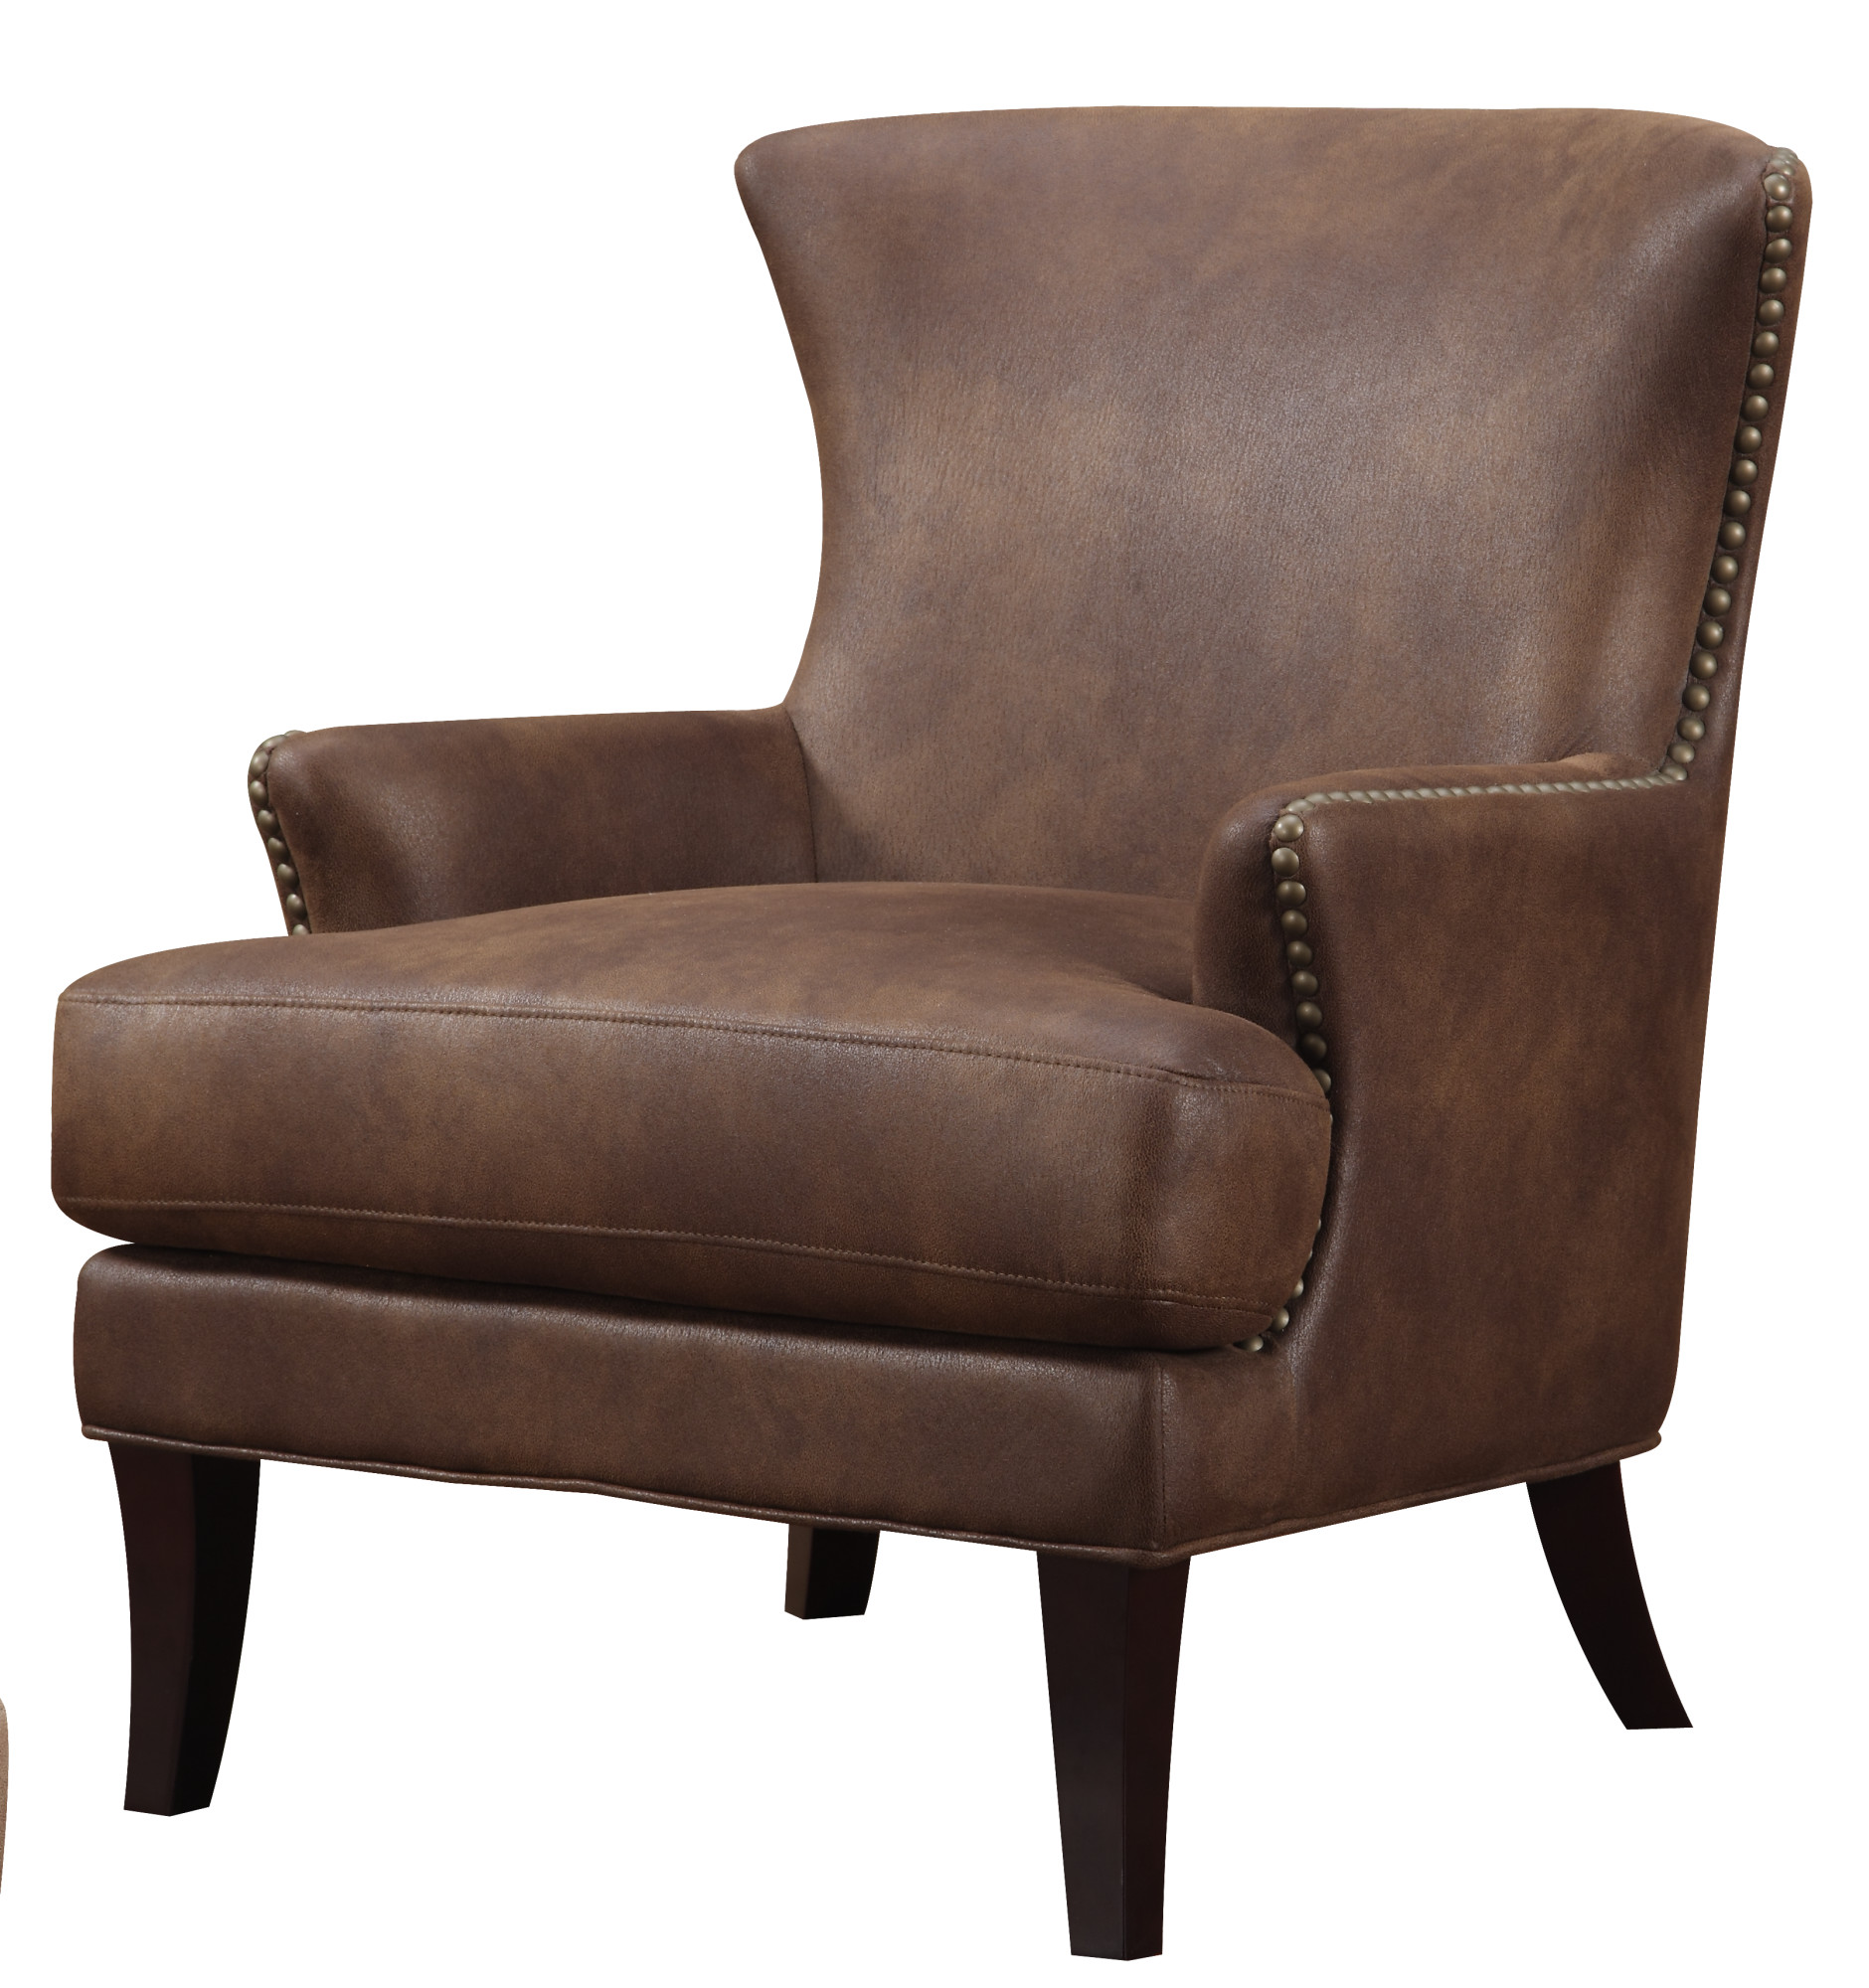 Emerald Home Nola Brown Accent Chair with Faux Suede Upholstery And Nailhead Trim